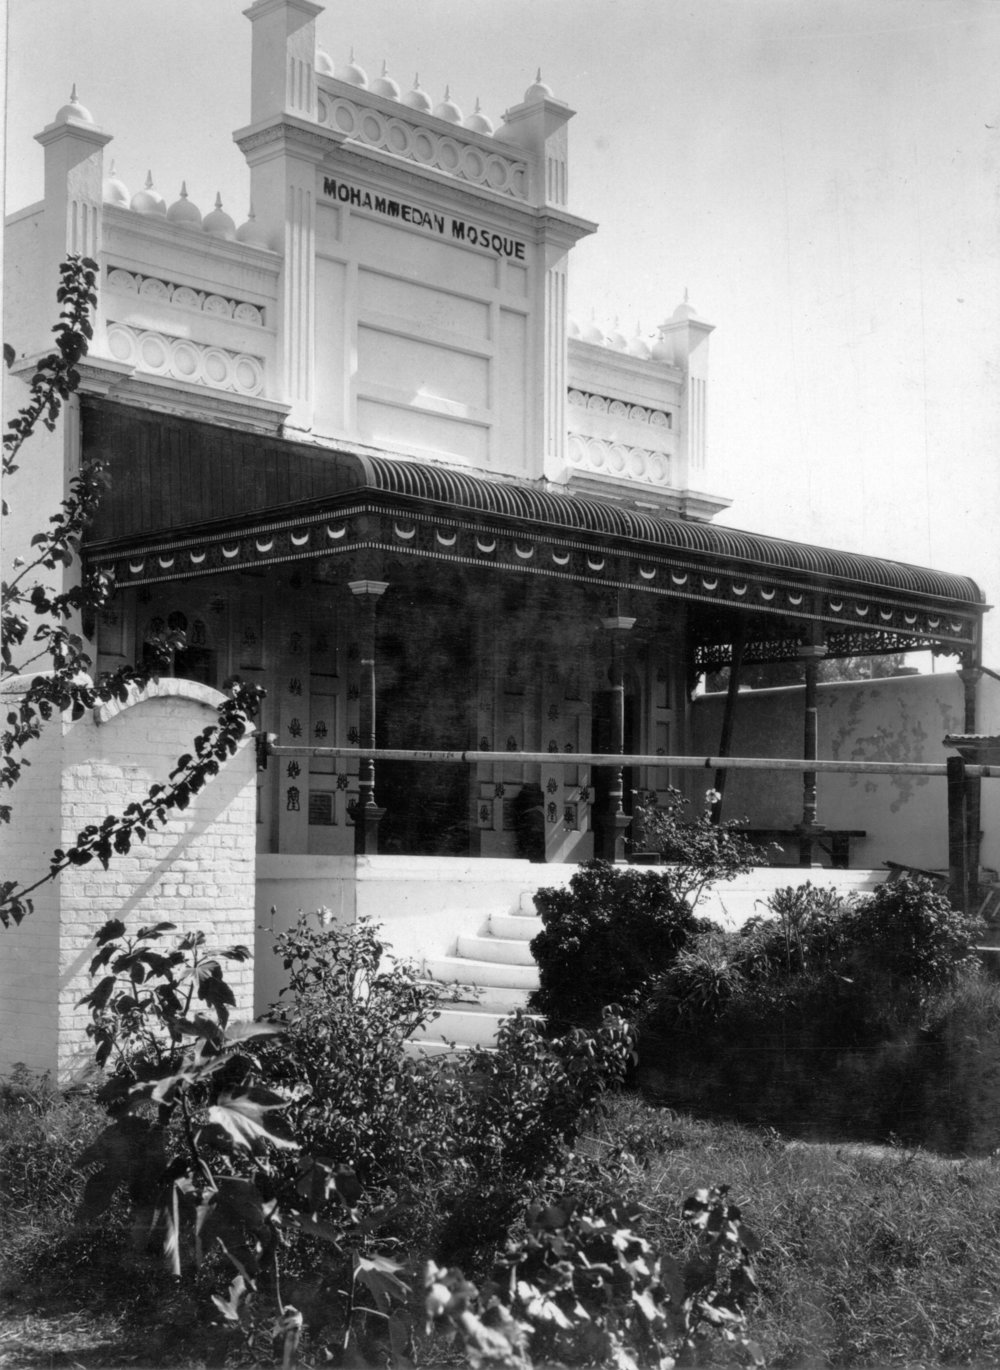 Perth Mohammedan Mosque, 1933.